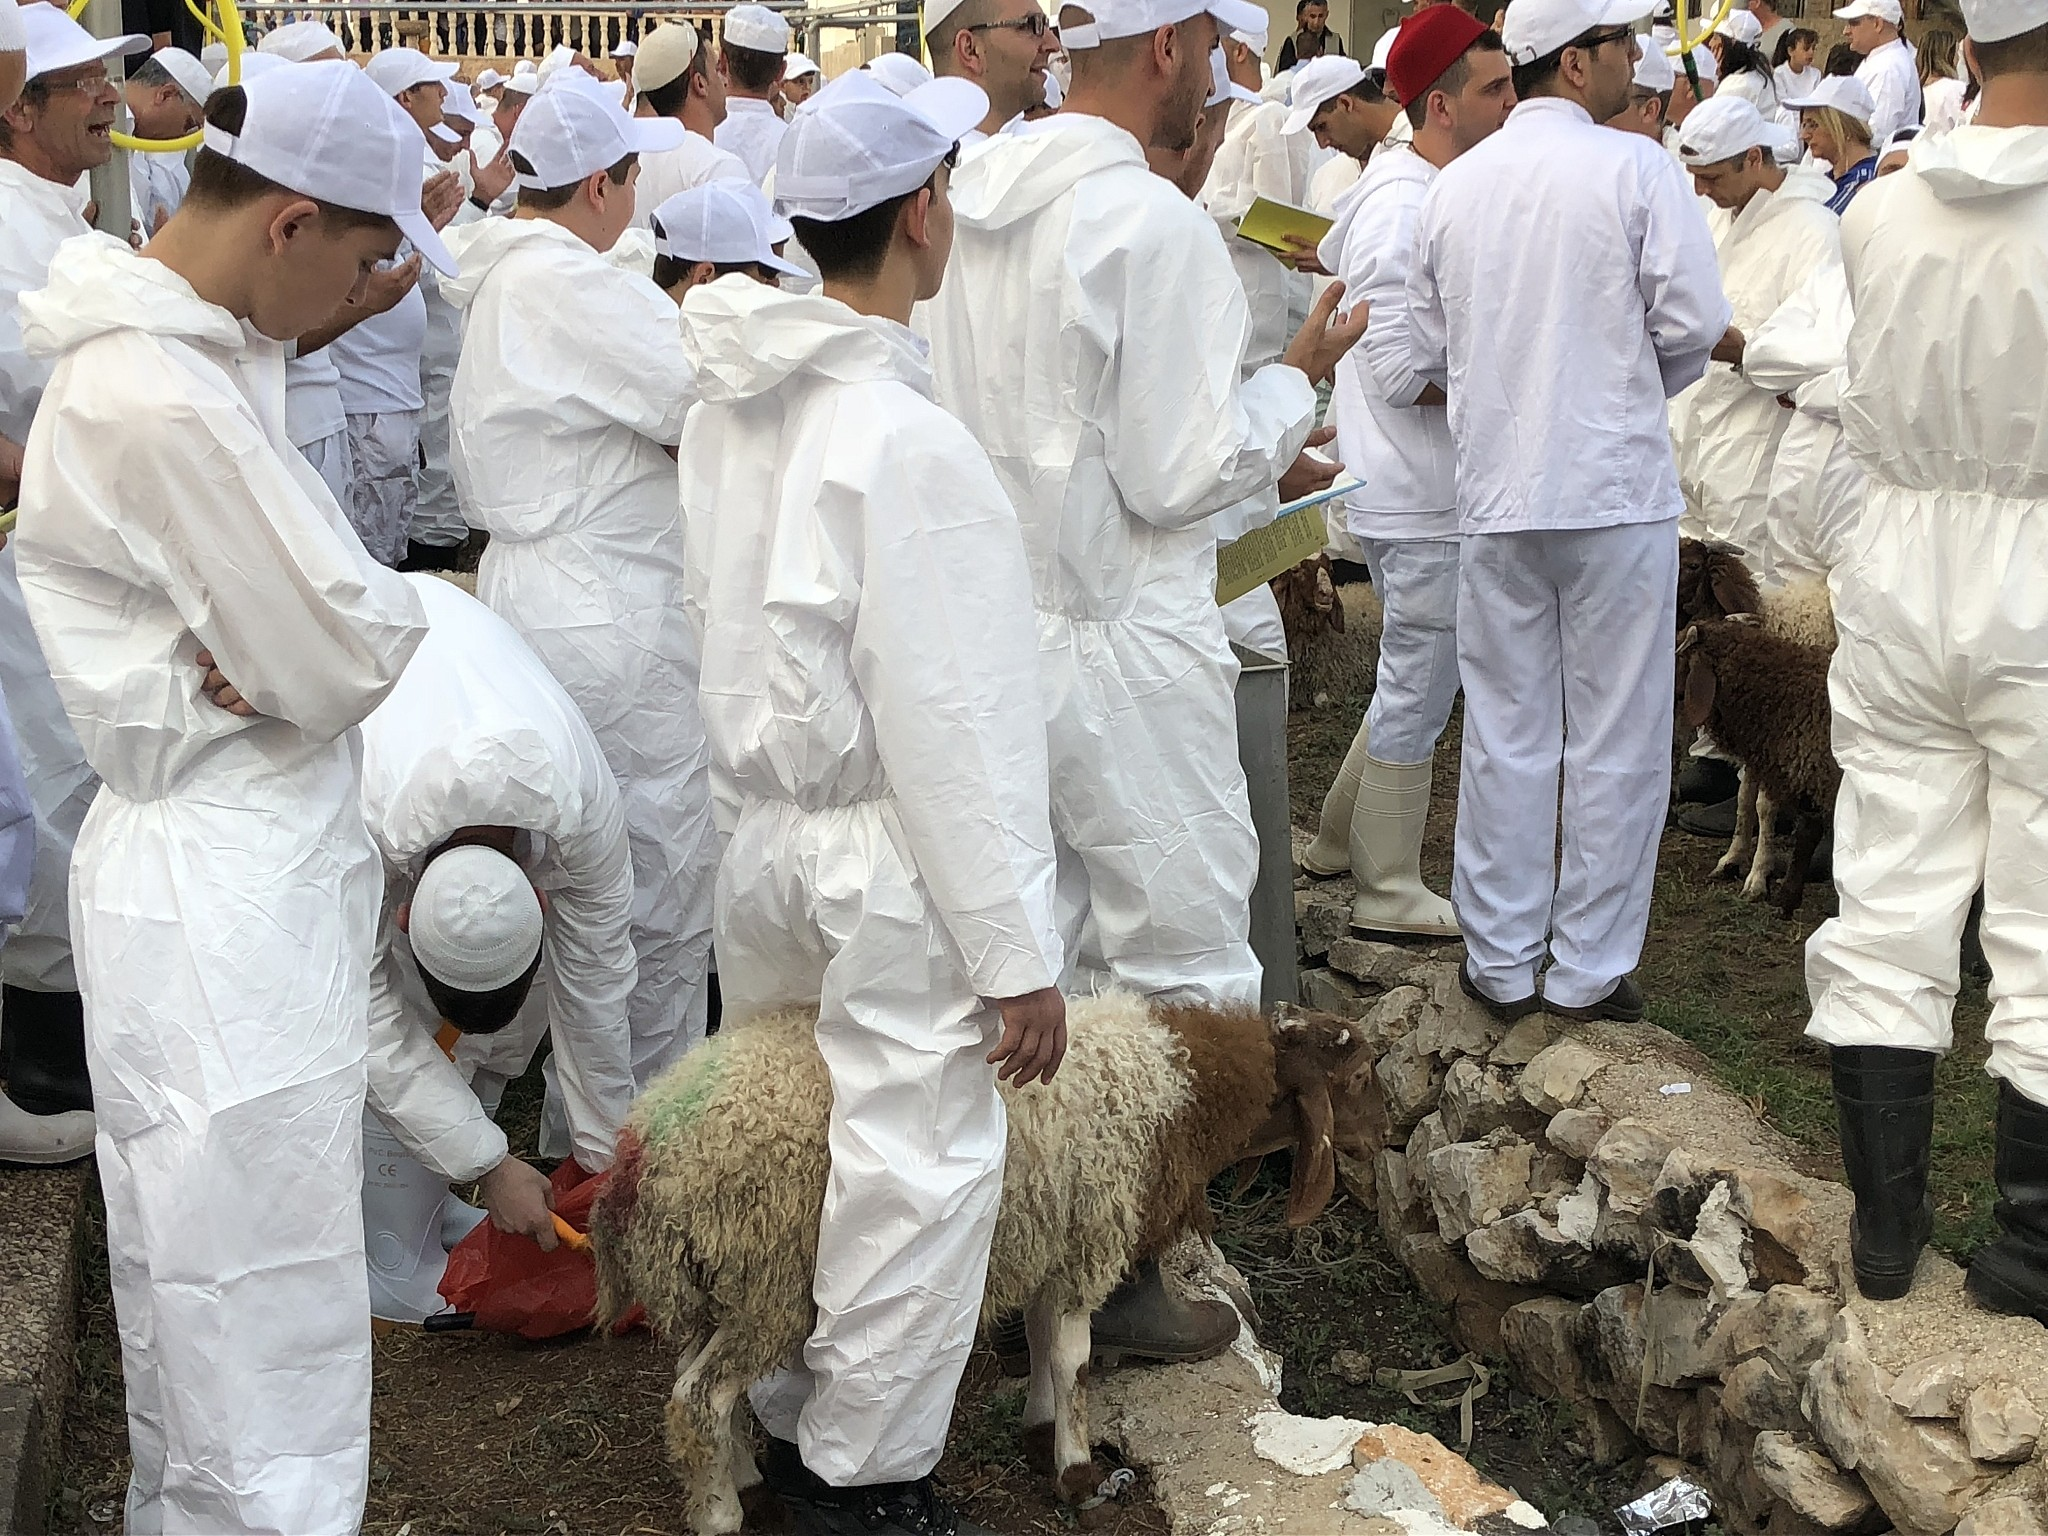 Samaritans take part in the traditional Passover sacrifice ceremony, where sheep and goats are slaughtered, at Mount Gerizim near the northern West Bank city of Nablus on April 29, 2018. (Jacob Magid/Times of Israel)